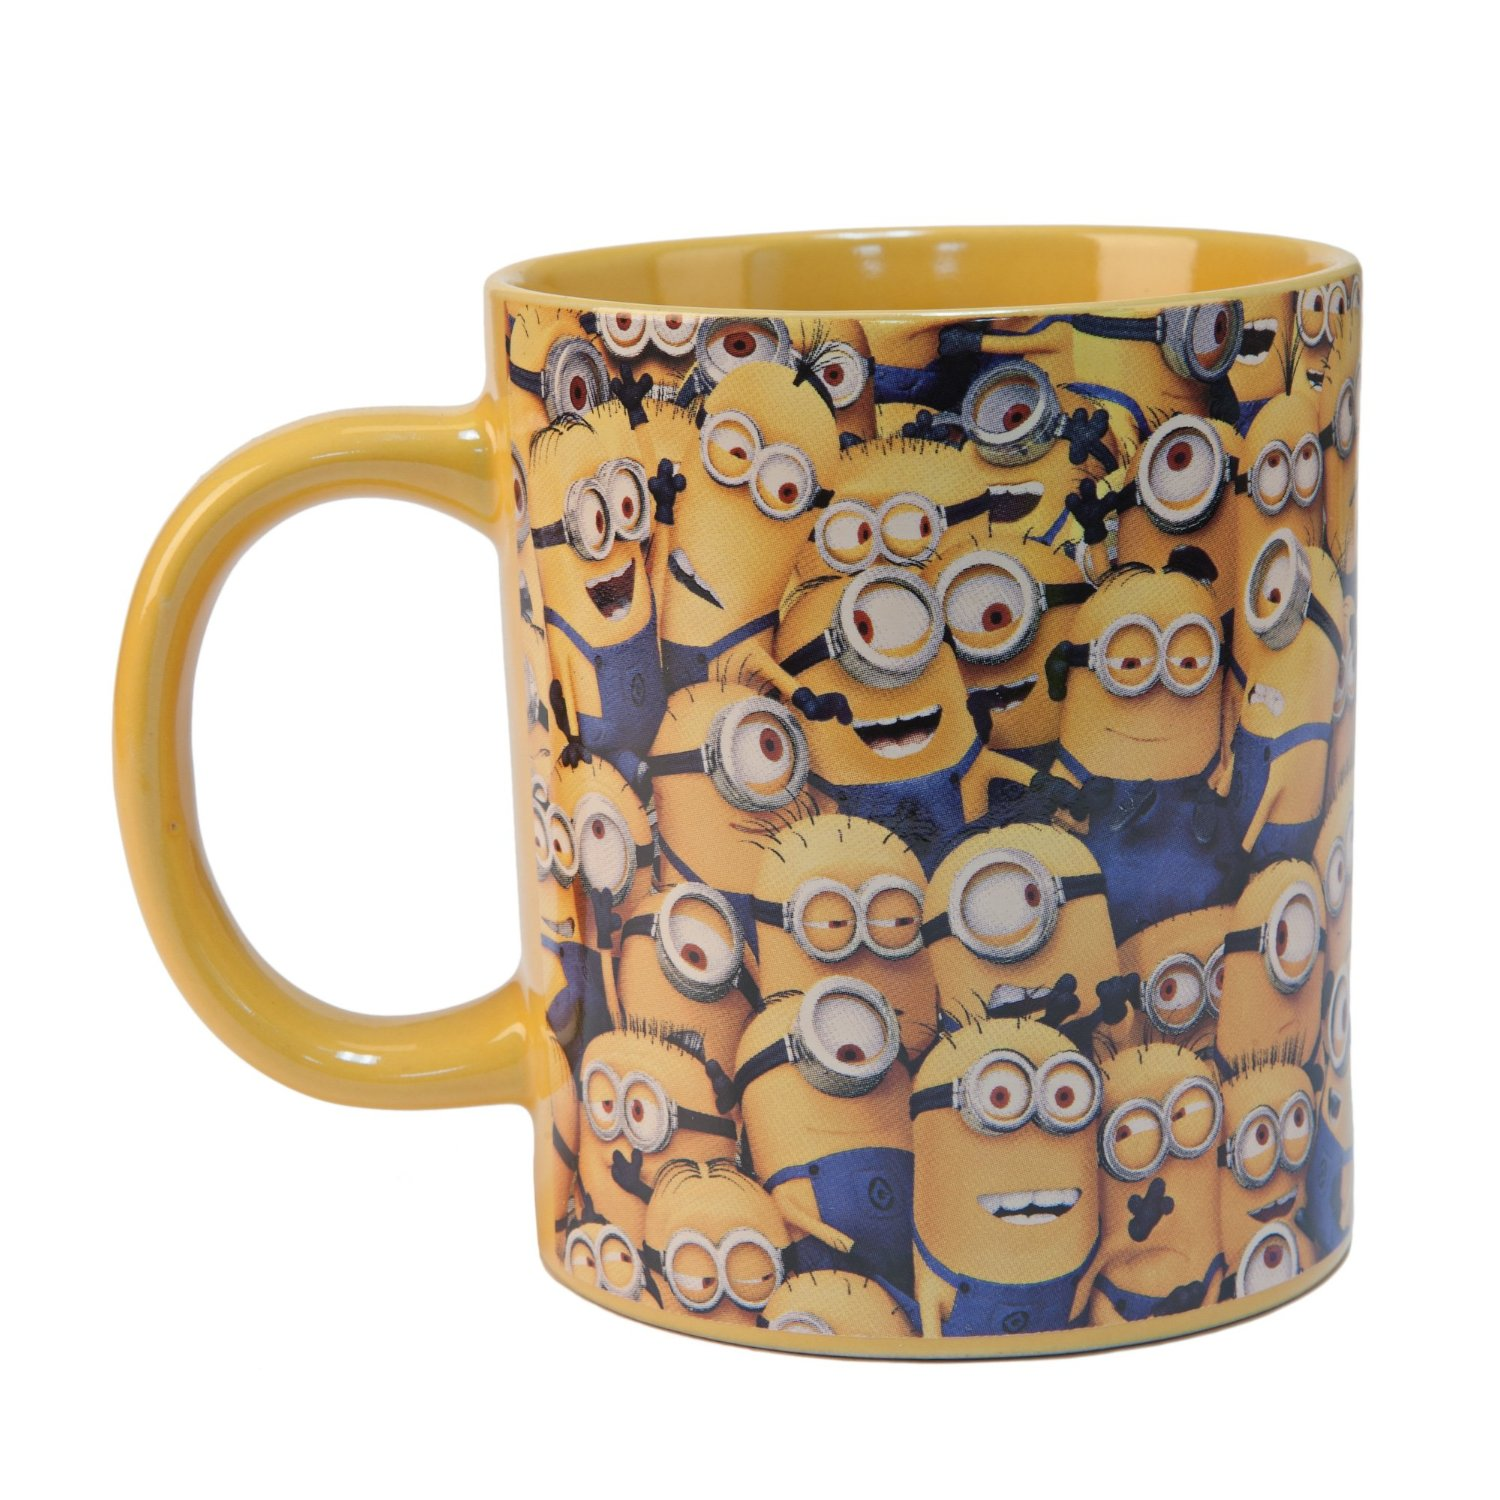 Funny Coffee Mugs And Mugs With Quotes Minions Coffee Mug